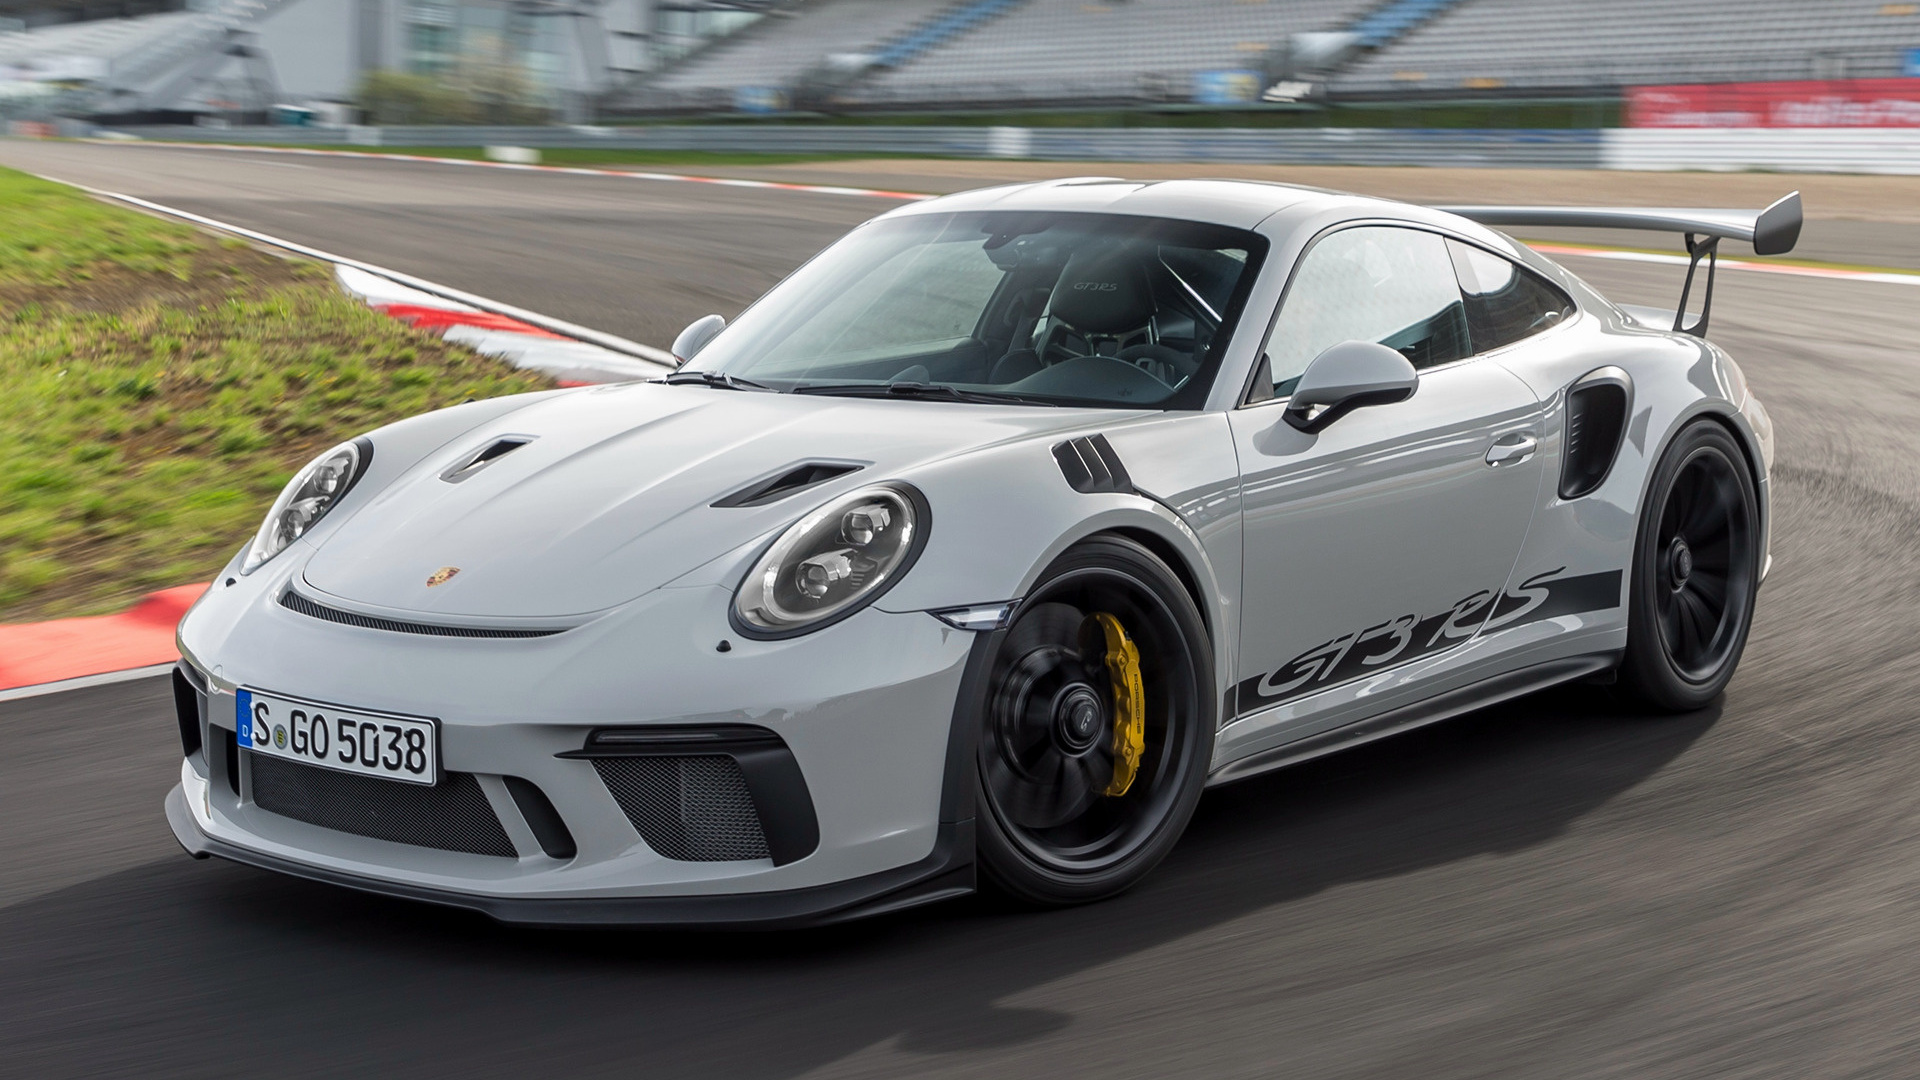 Porsche 911 Gt3 Rs Wallpaper: 2018 Porsche 911 GT3 RS - Wallpapers And HD Images